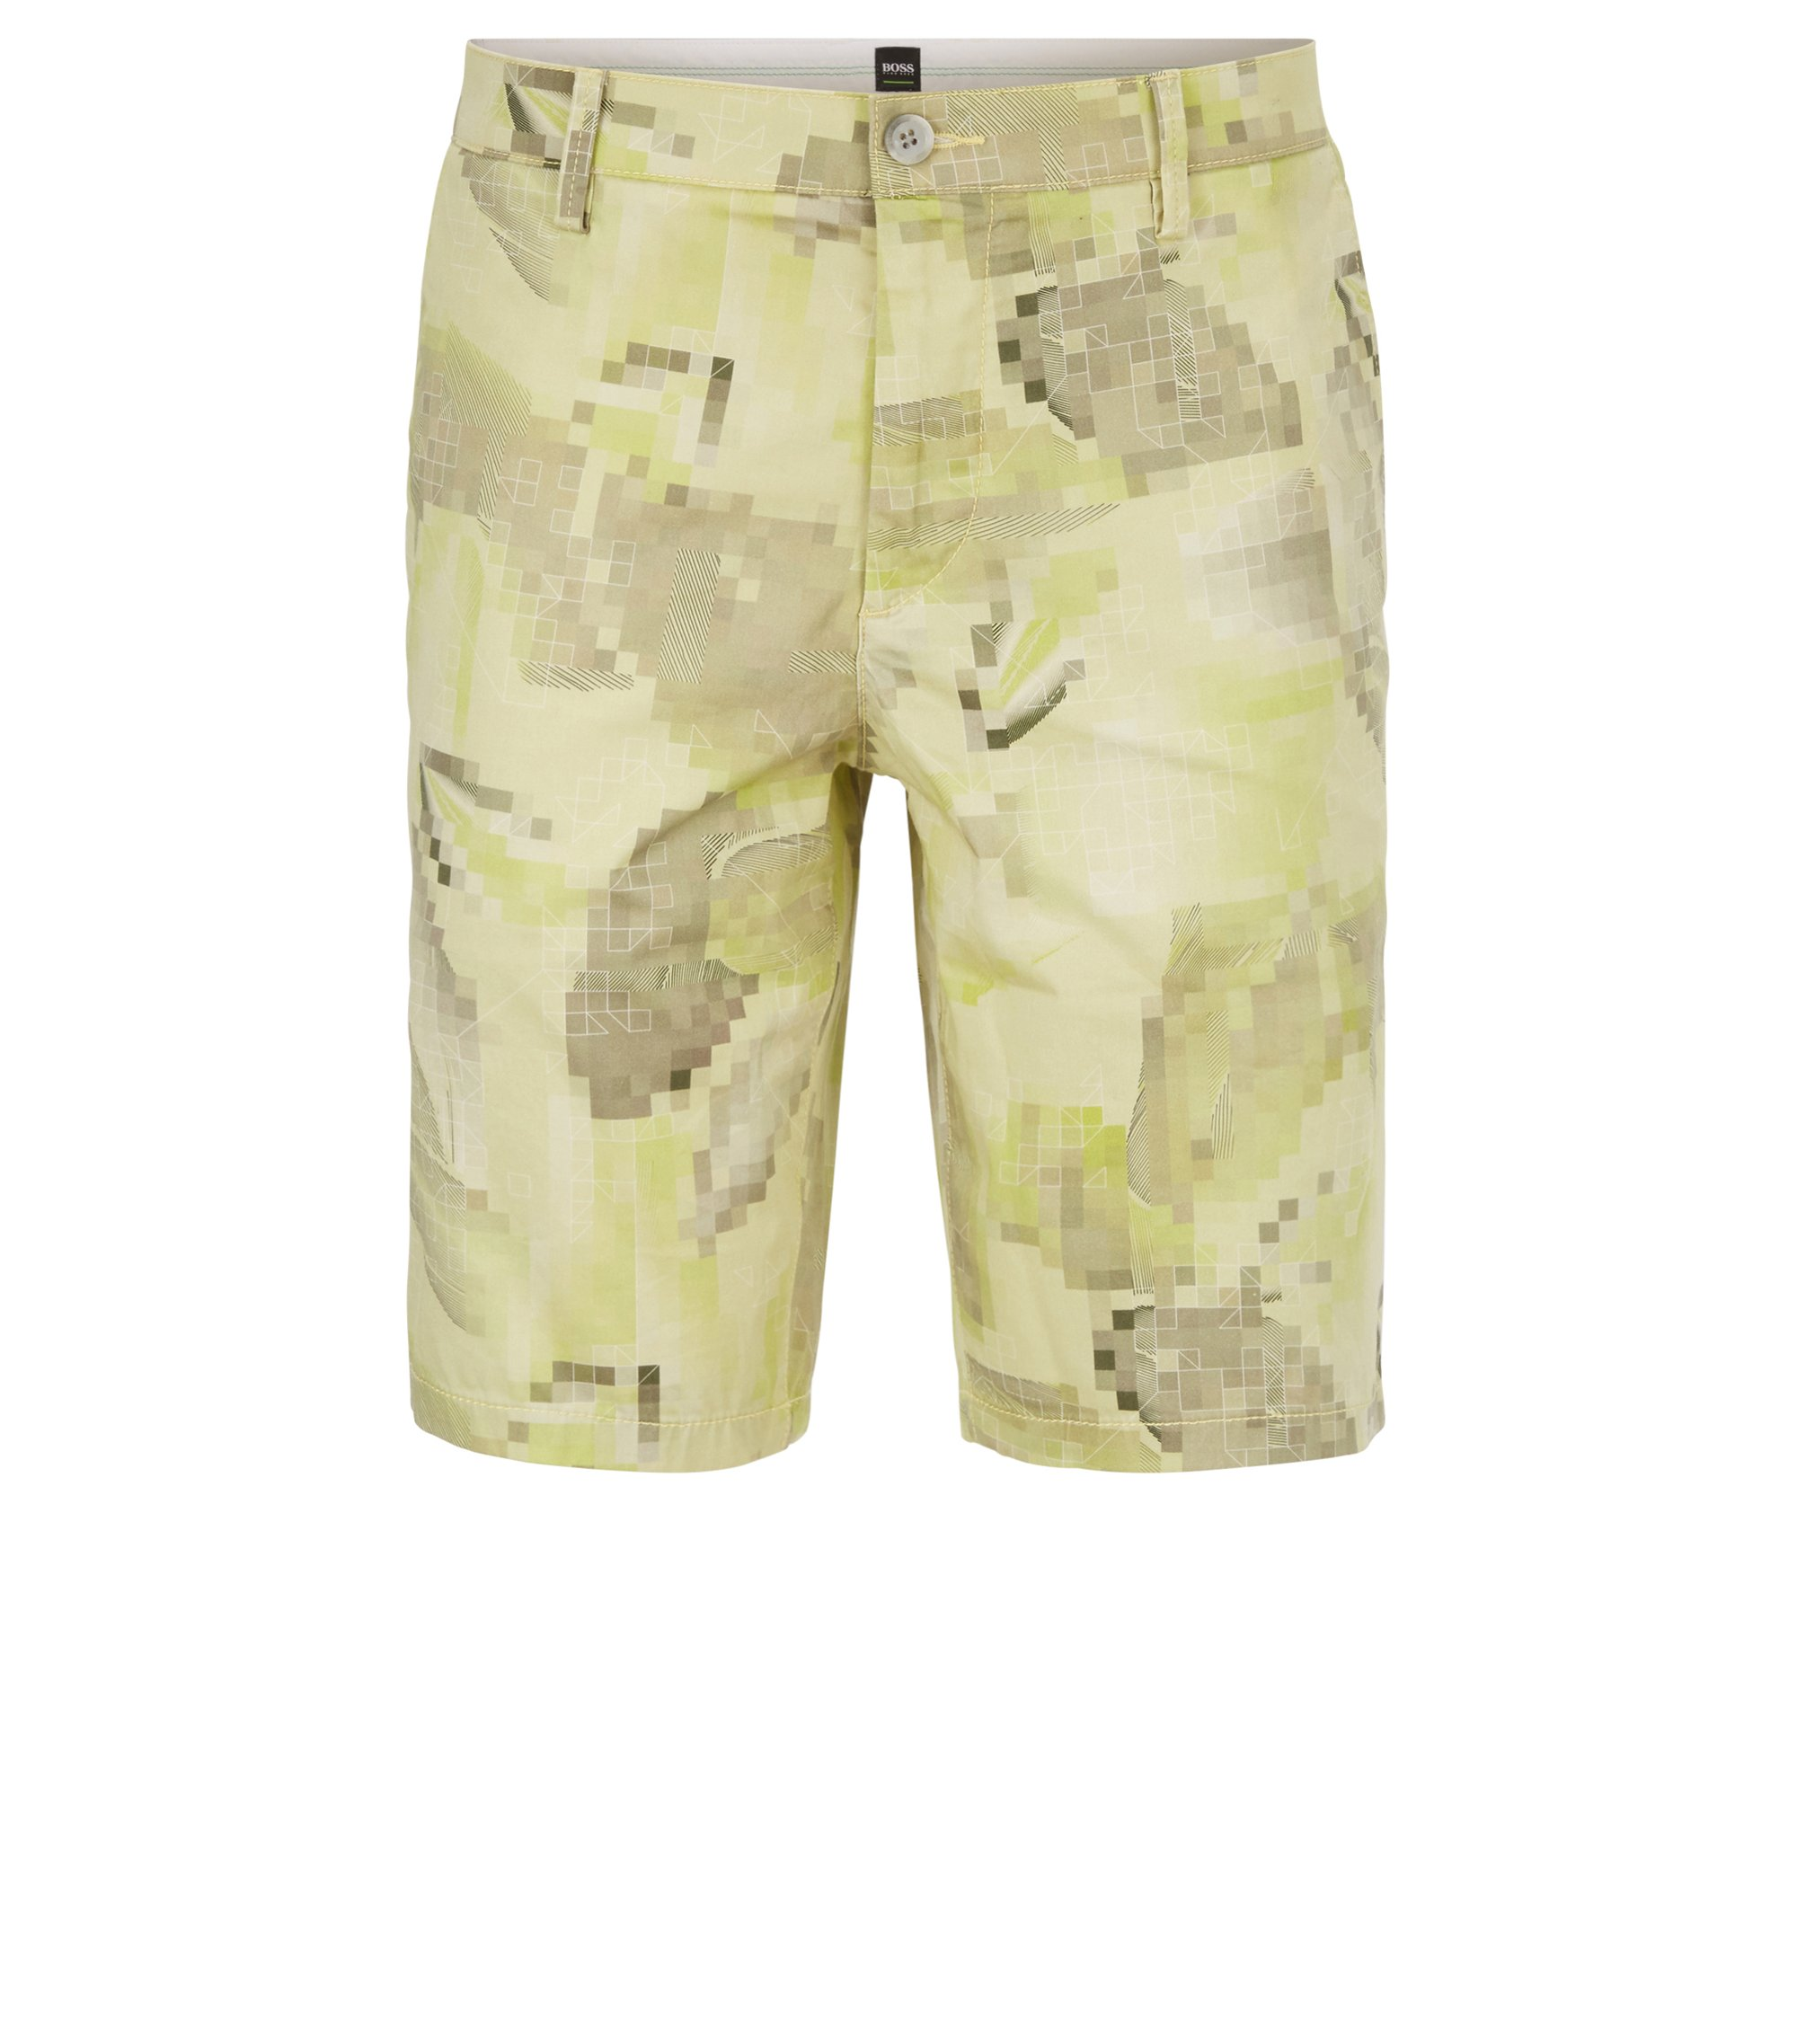 Digi-Camo Sateen Stretch Cotton Short, Slim Fit | Liem Print W, Light Green